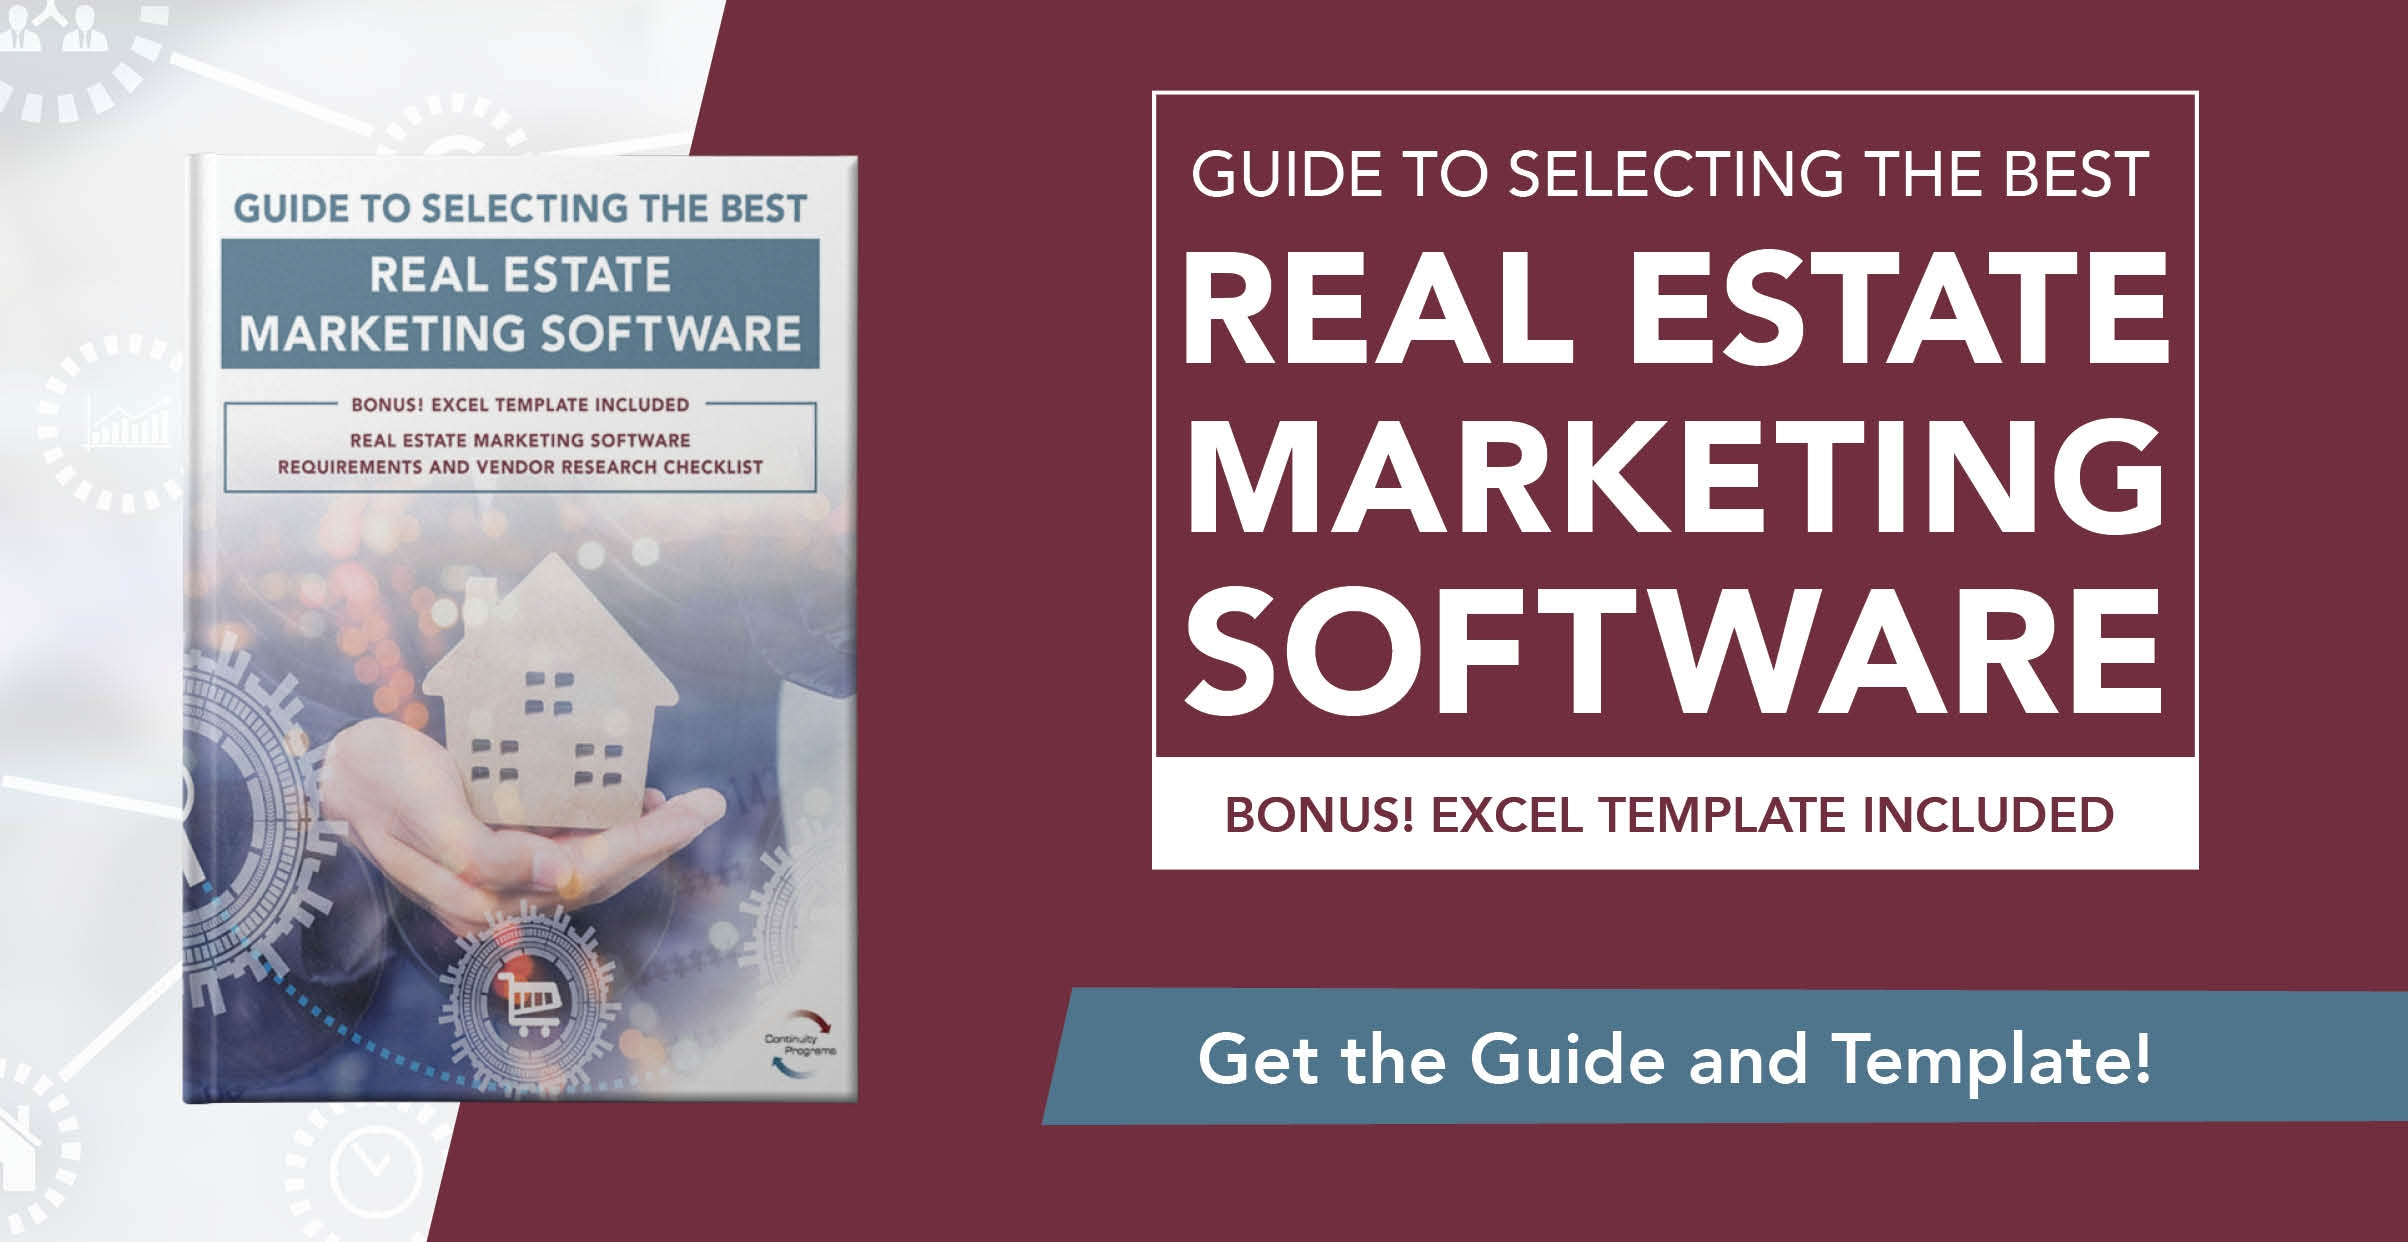 Guide To Selecting the Best Real Estate Marketing Software